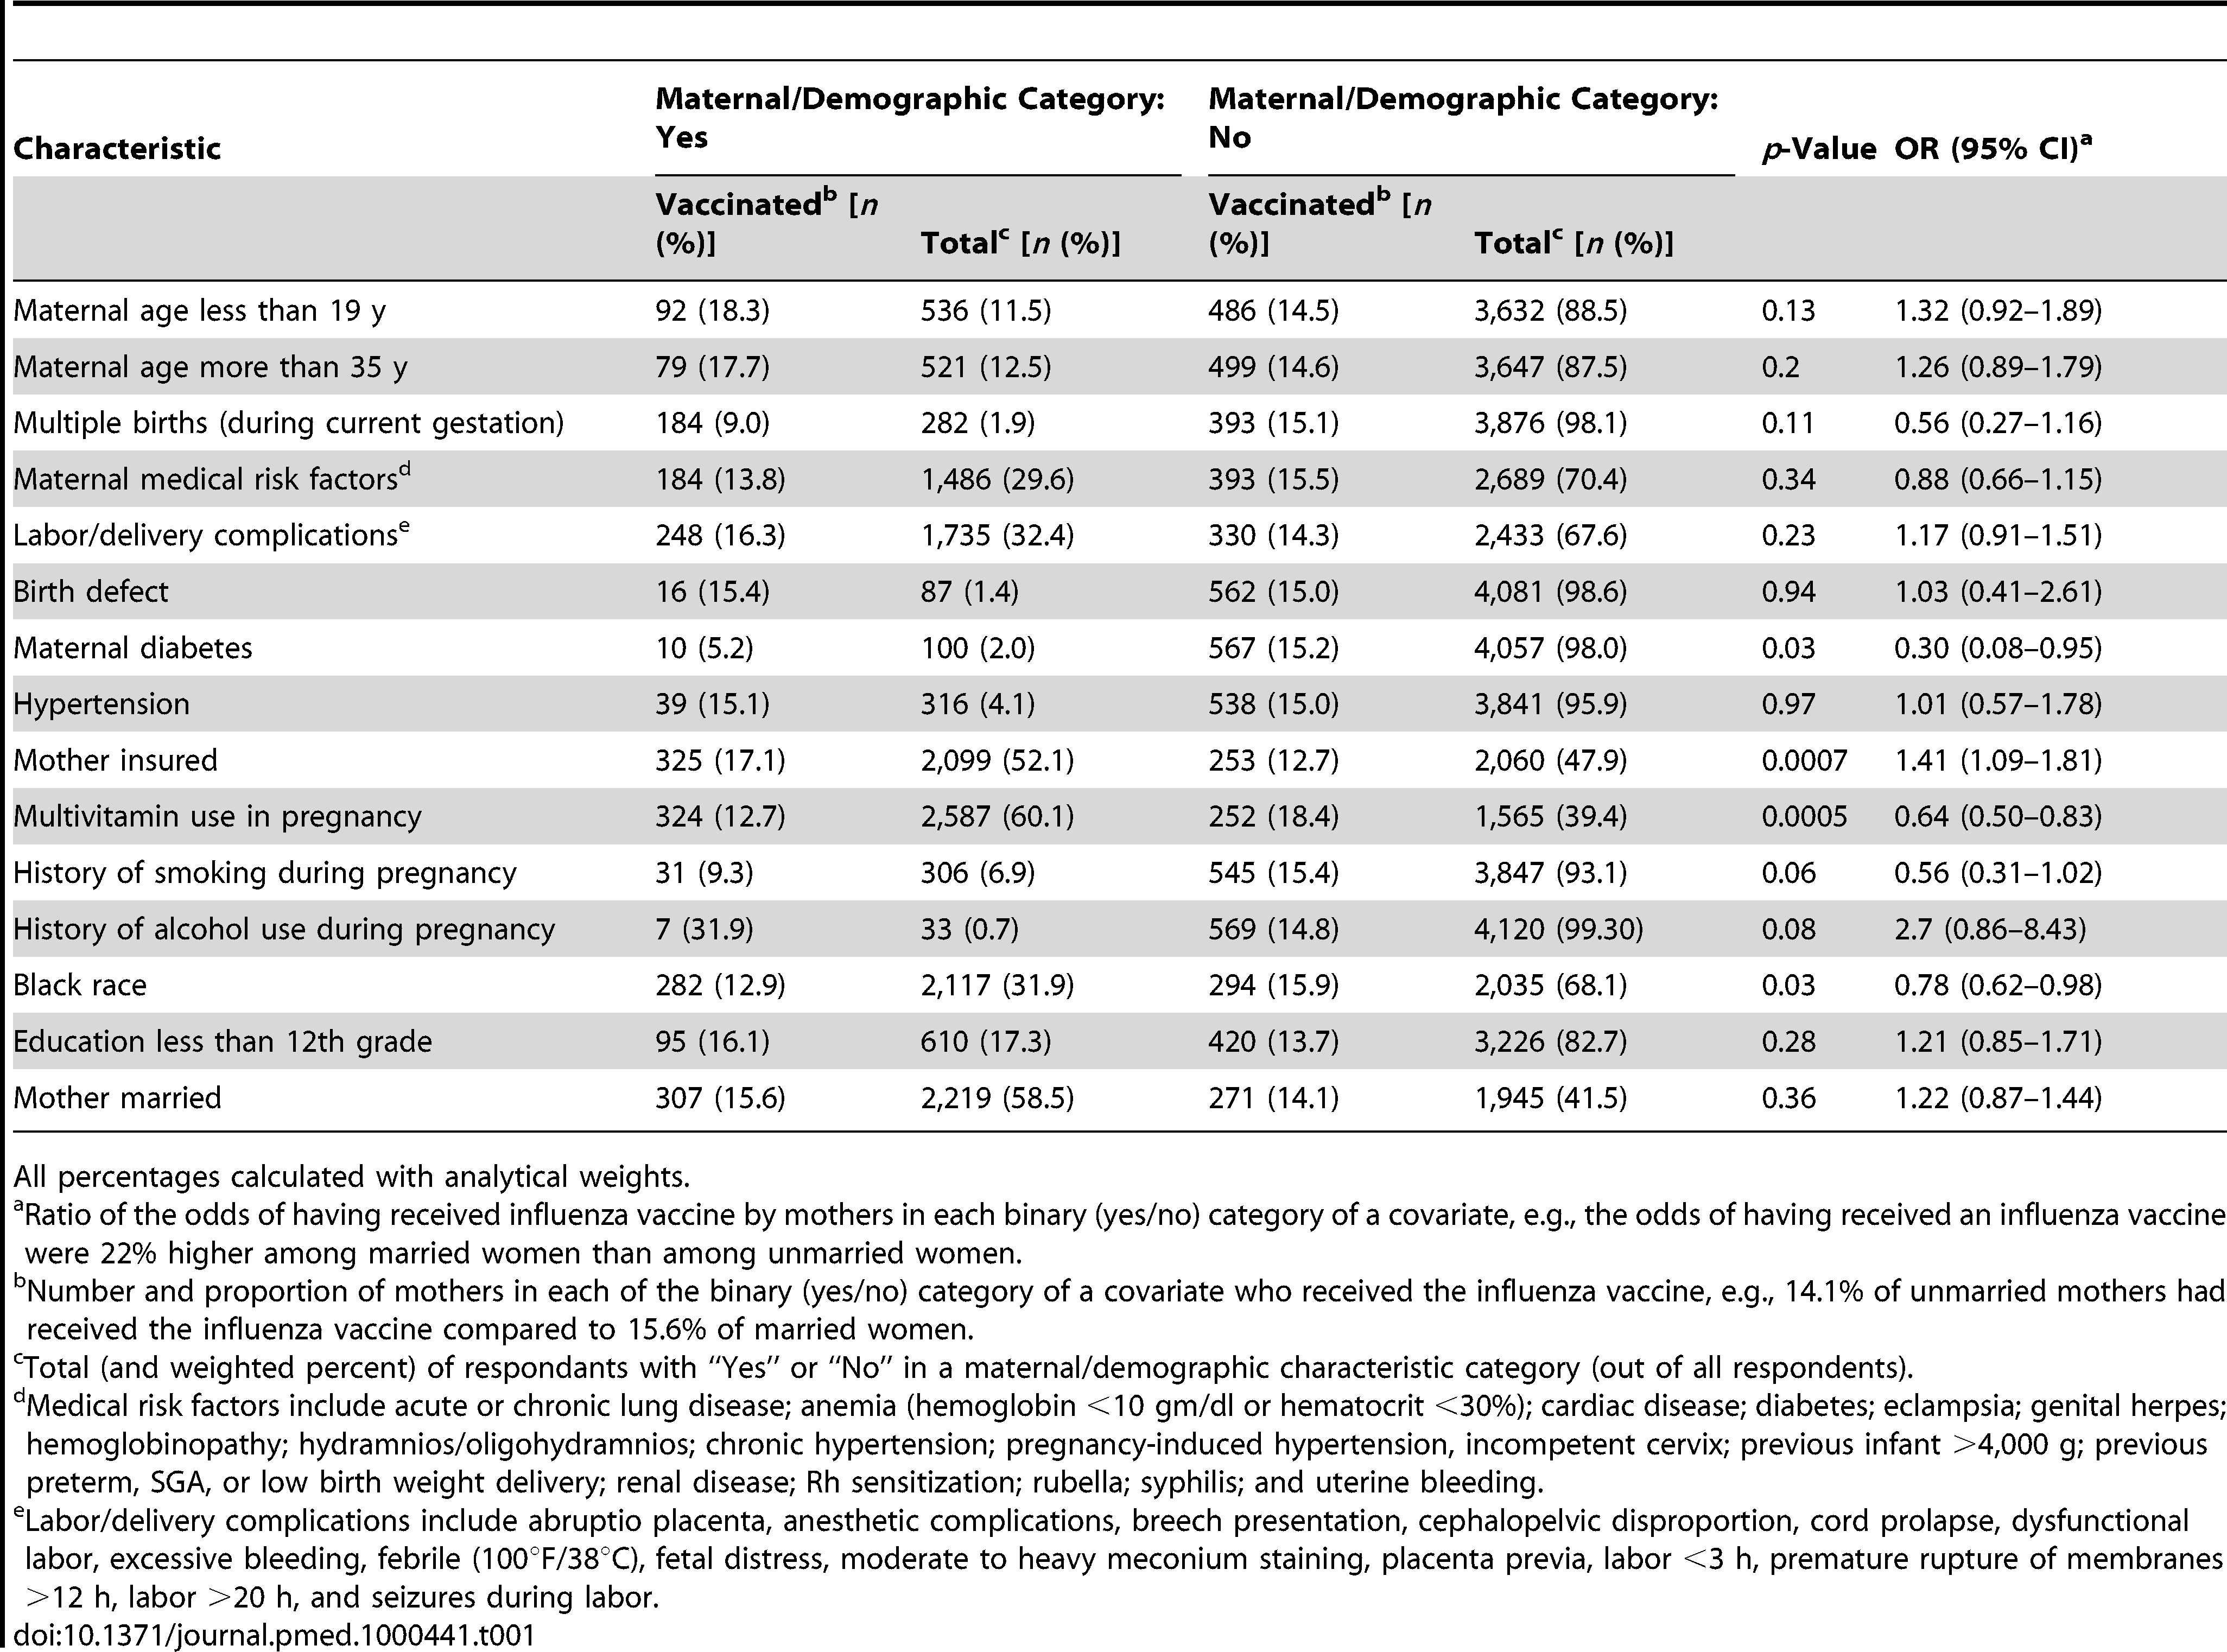 Receipt of influenza vaccine during pregnancy categorized by maternal characteristics.